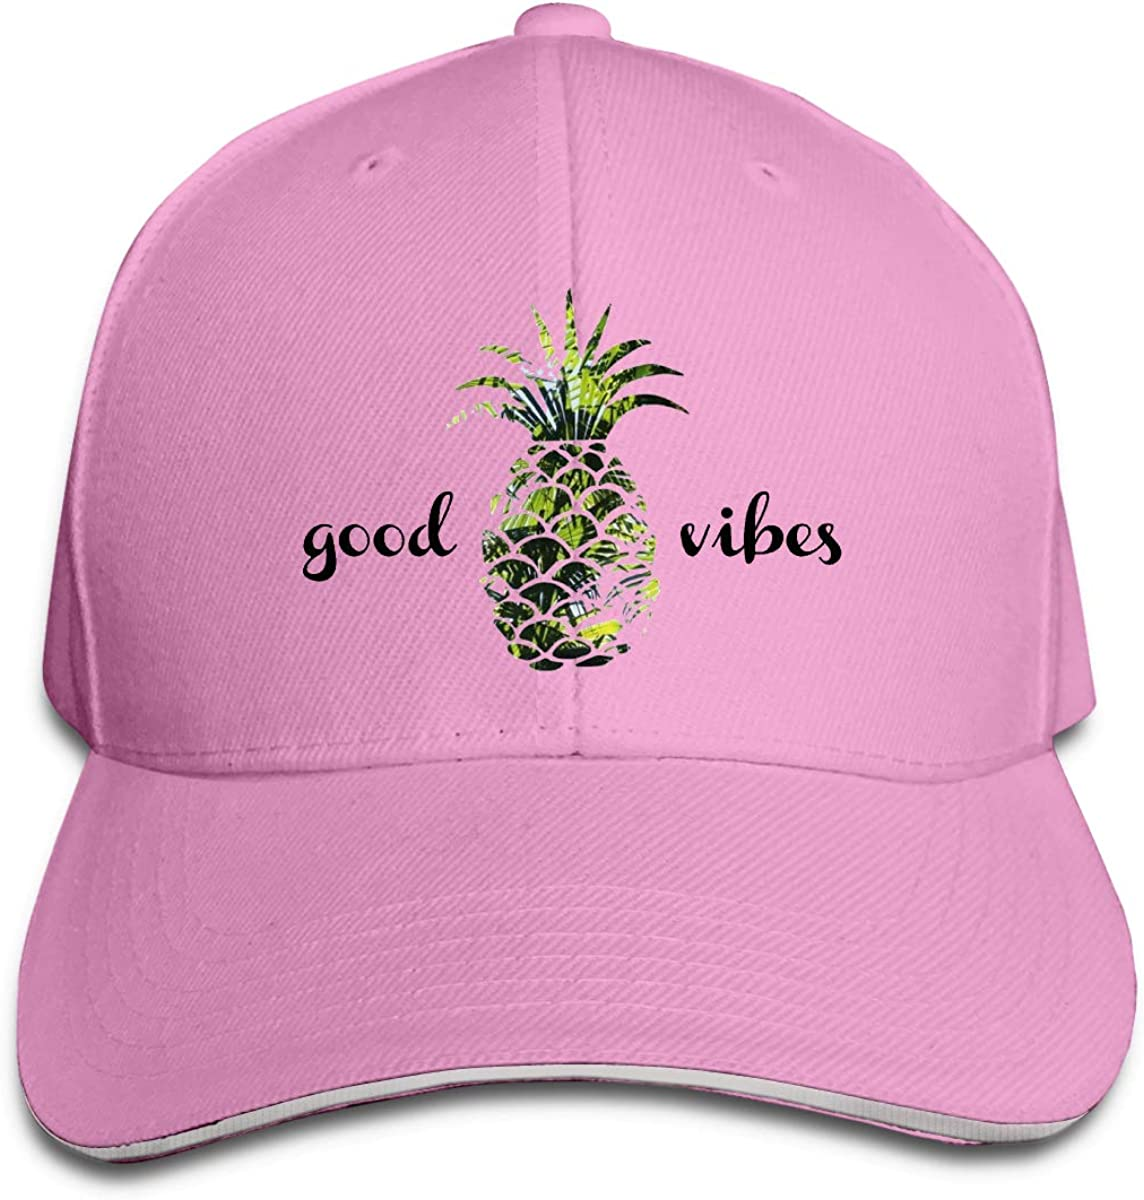 Good Vibes Pineapple Palm Tree Classic Adjustable Cotton Baseball Caps Trucker Driver Hat Outdoor Cap Pink